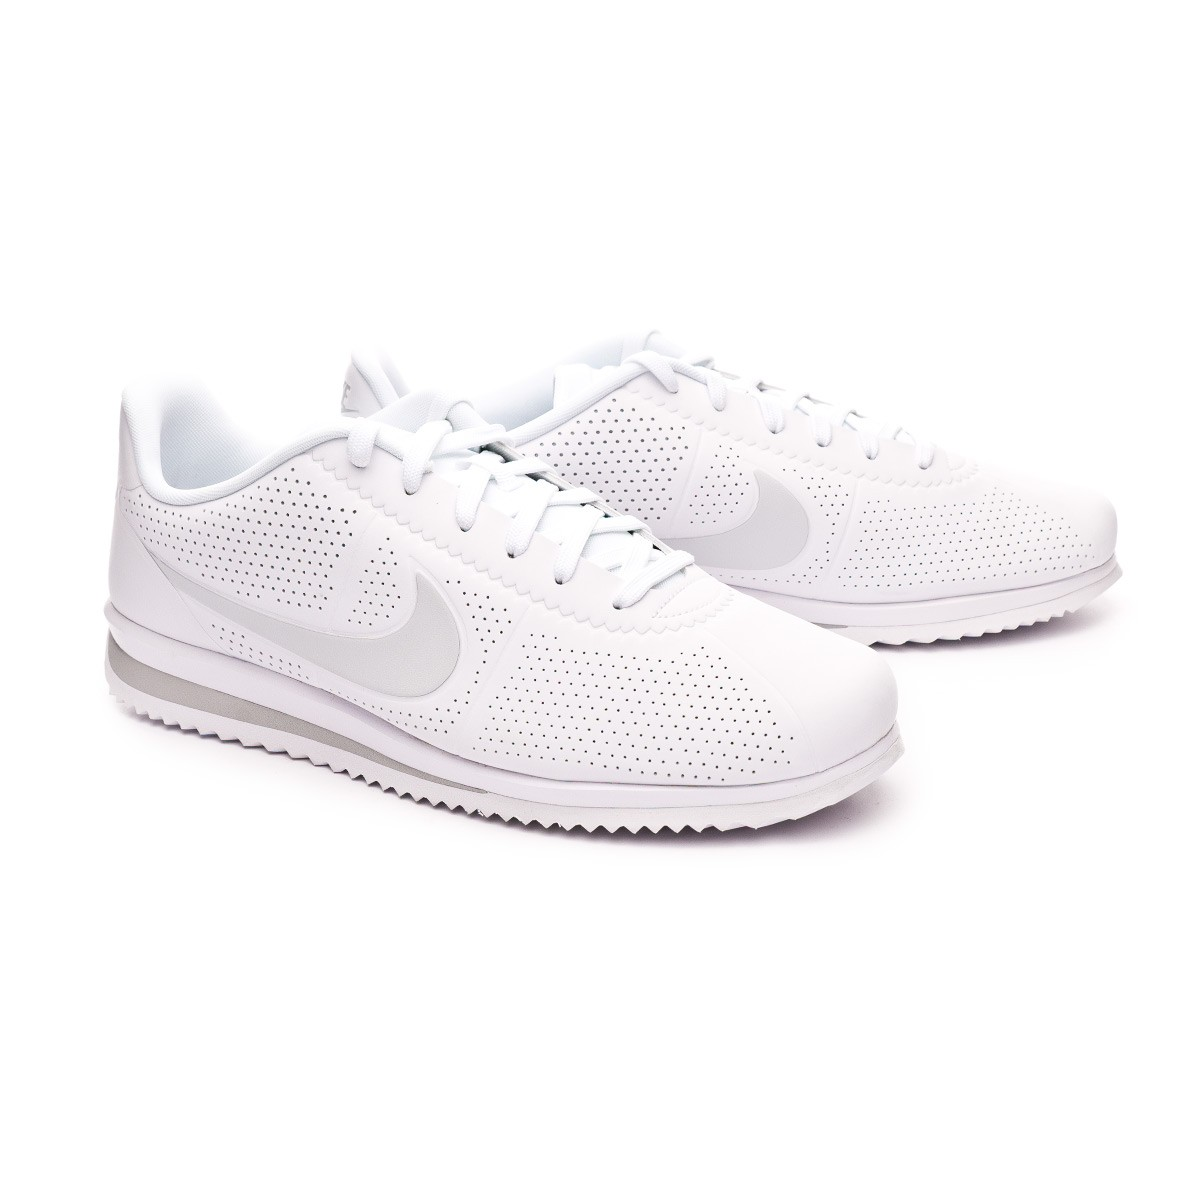 buy popular 4d80d 59b20 Tenis Nike Cortez Ultra Moire 2019 White-Pure platinum - Tienda de fútbol  Fútbol Emotion